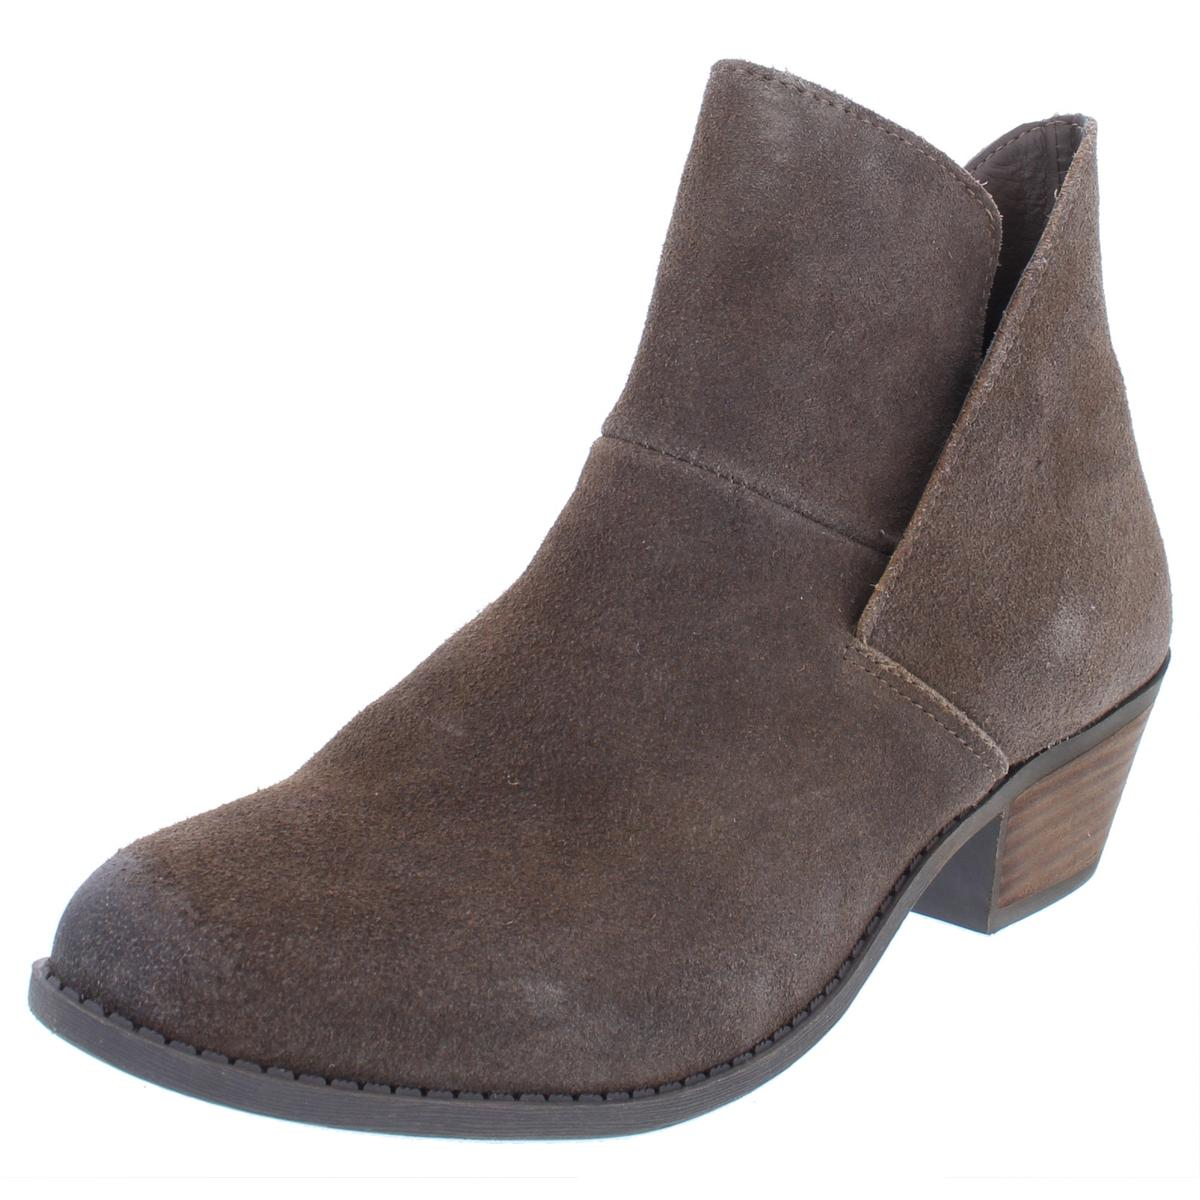 9c1e1015953 Details about Ruff Hewn Womens Easton Taupe Suede Ankle Booties Shoes 9  Medium (B